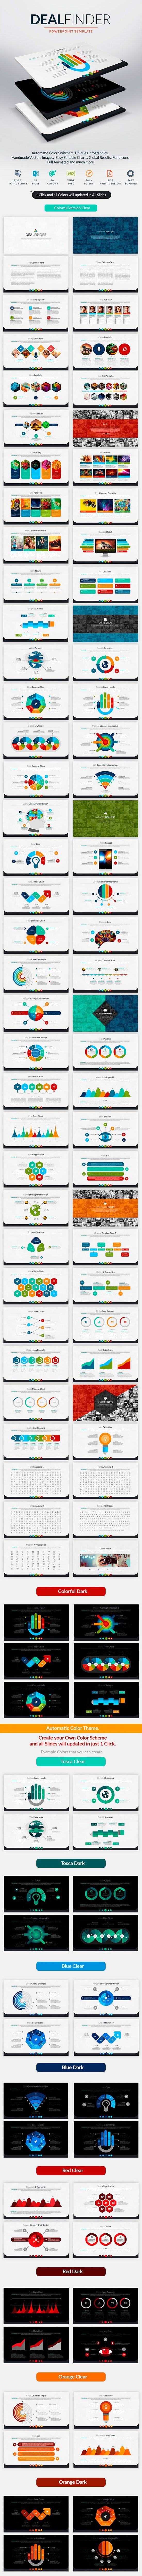 Running windows vista and microsoft office including powerpoint - Deal Finder Powerpoint Template